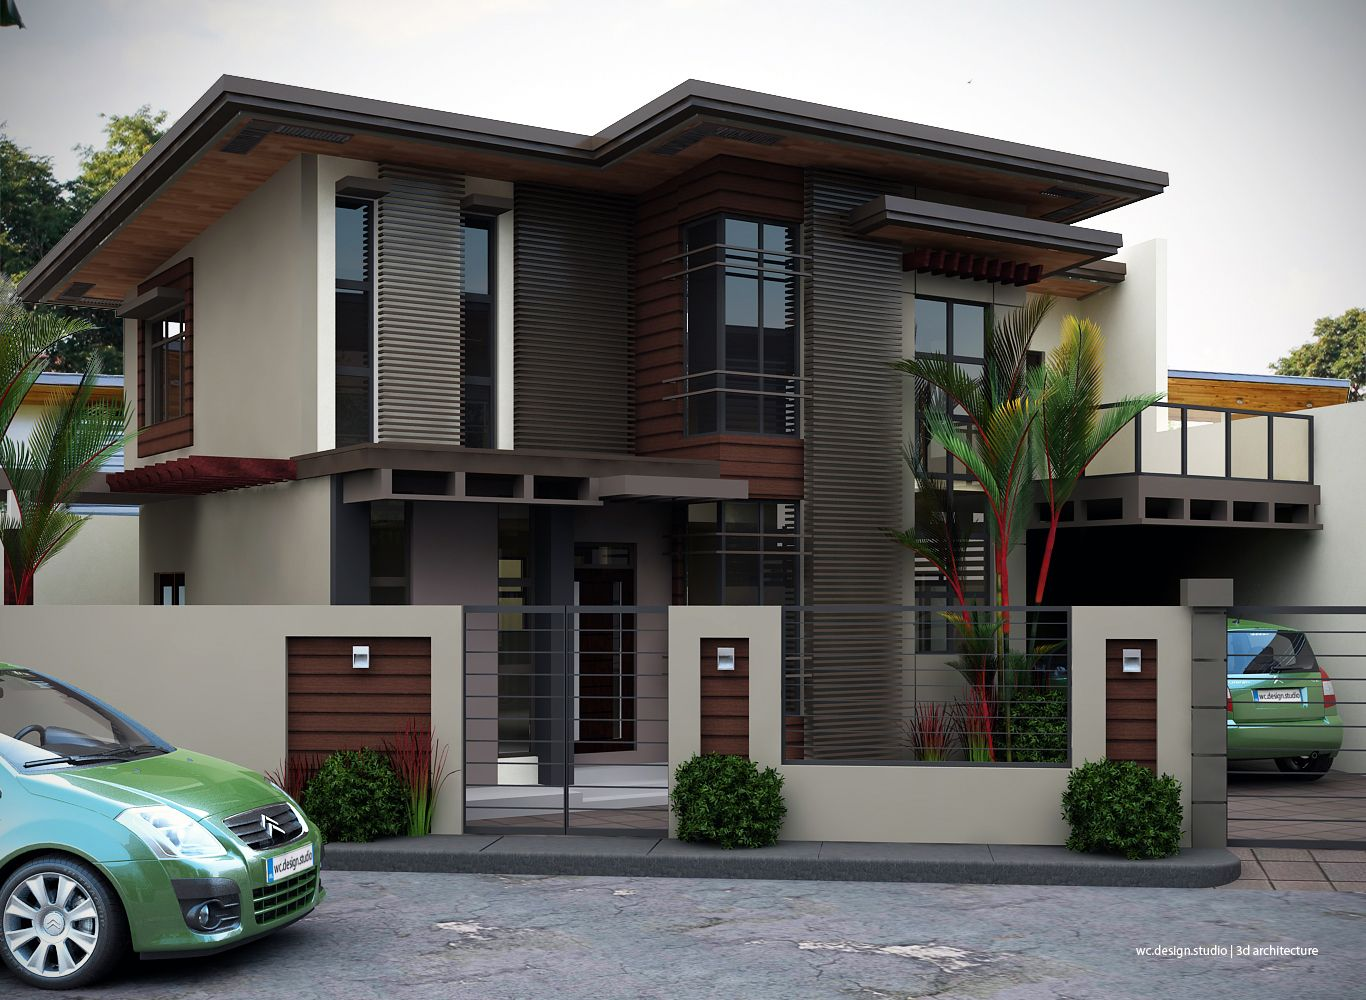 396314f4fb8eb73fcb6fa808adaec2a3 - 28+ Small Two Story Modern House Exterior Design Images